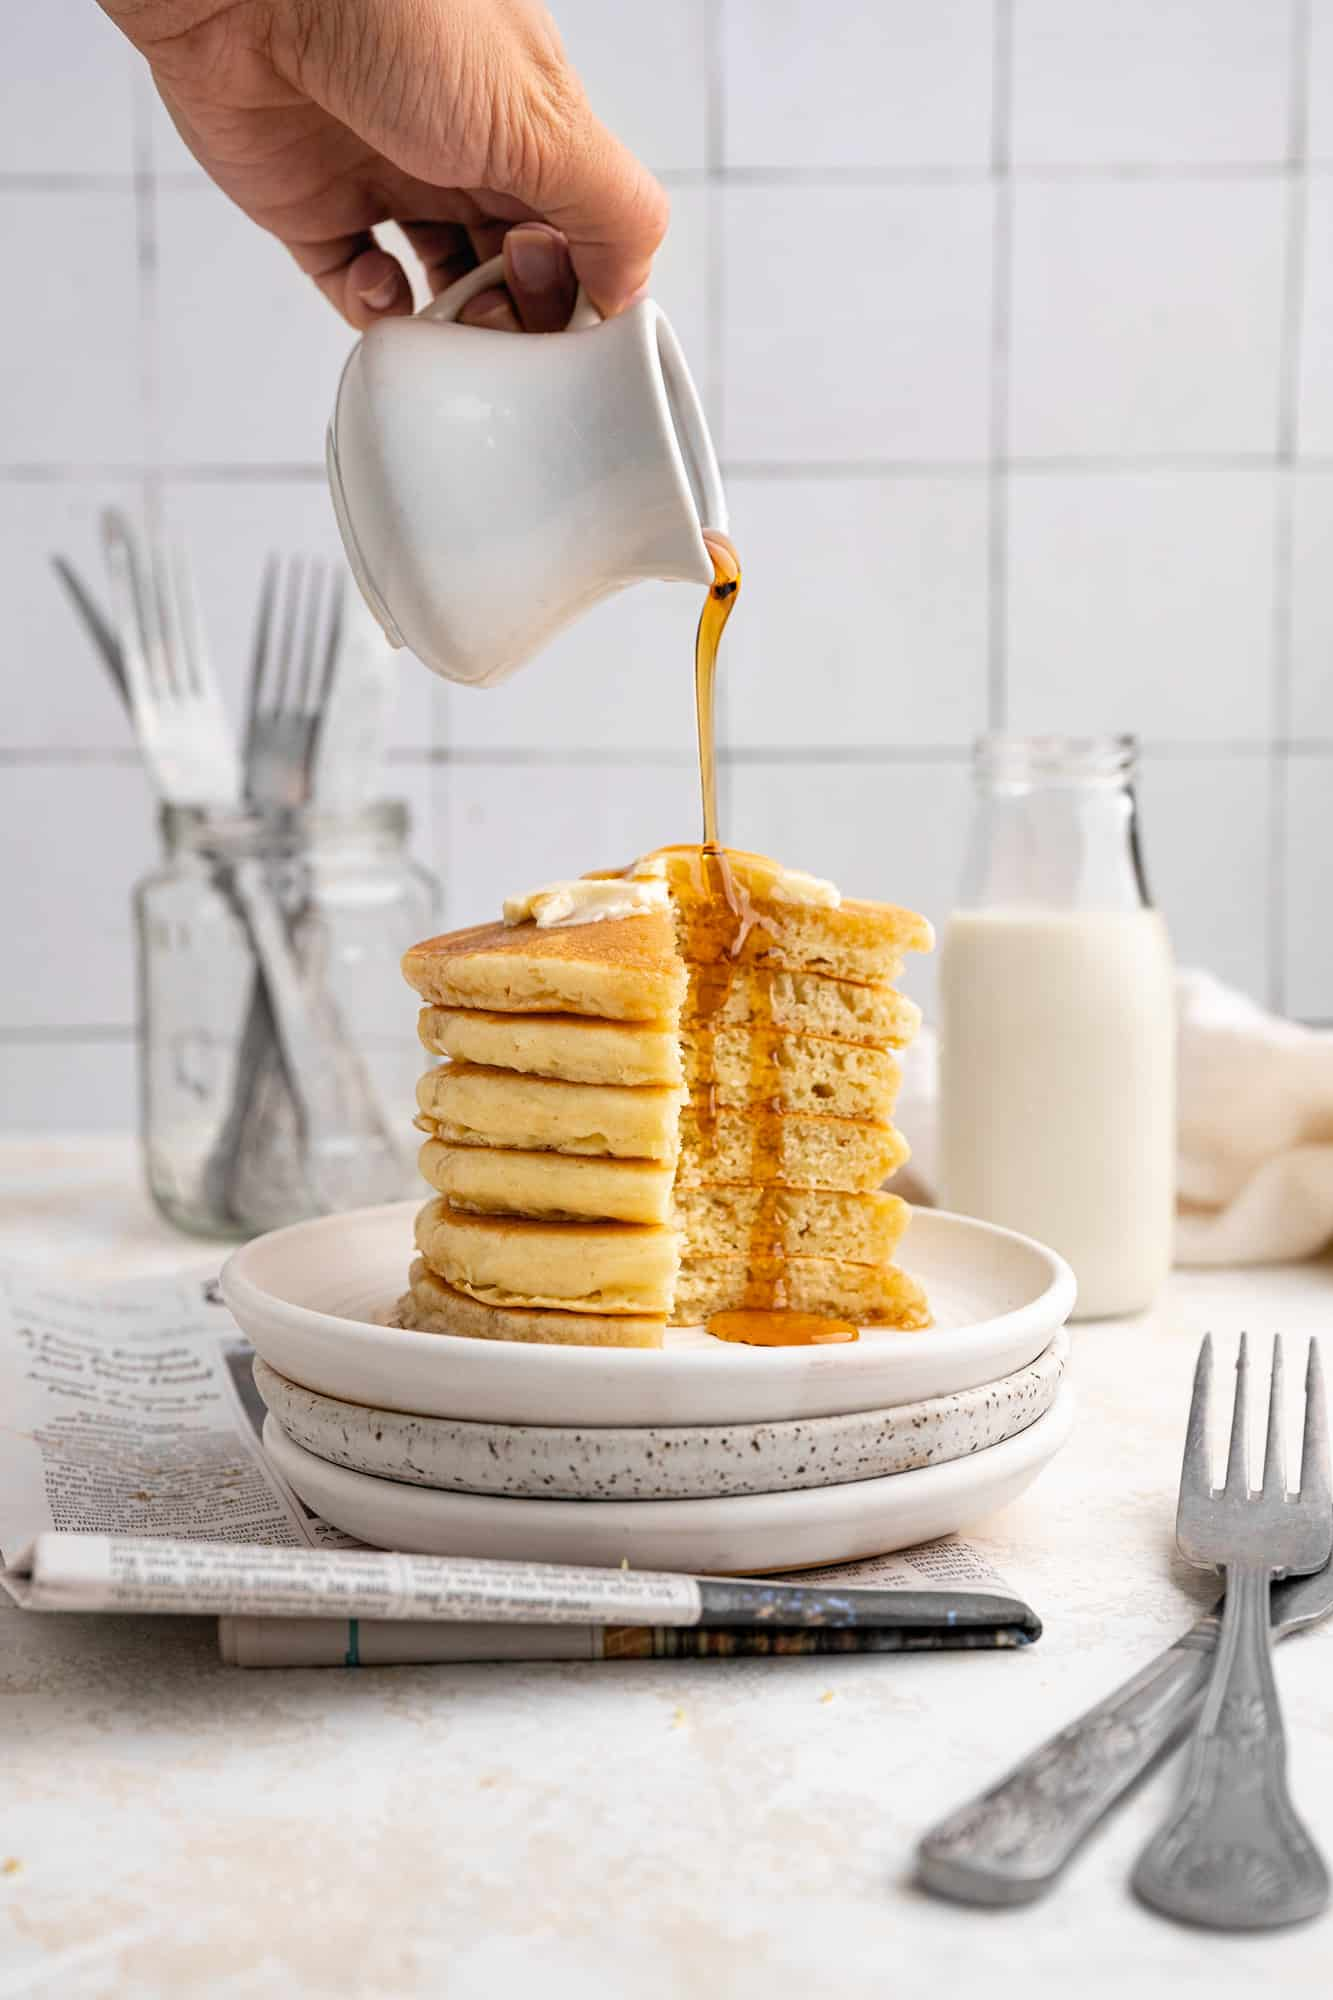 Stack of pancakes cut open with syrup being poured